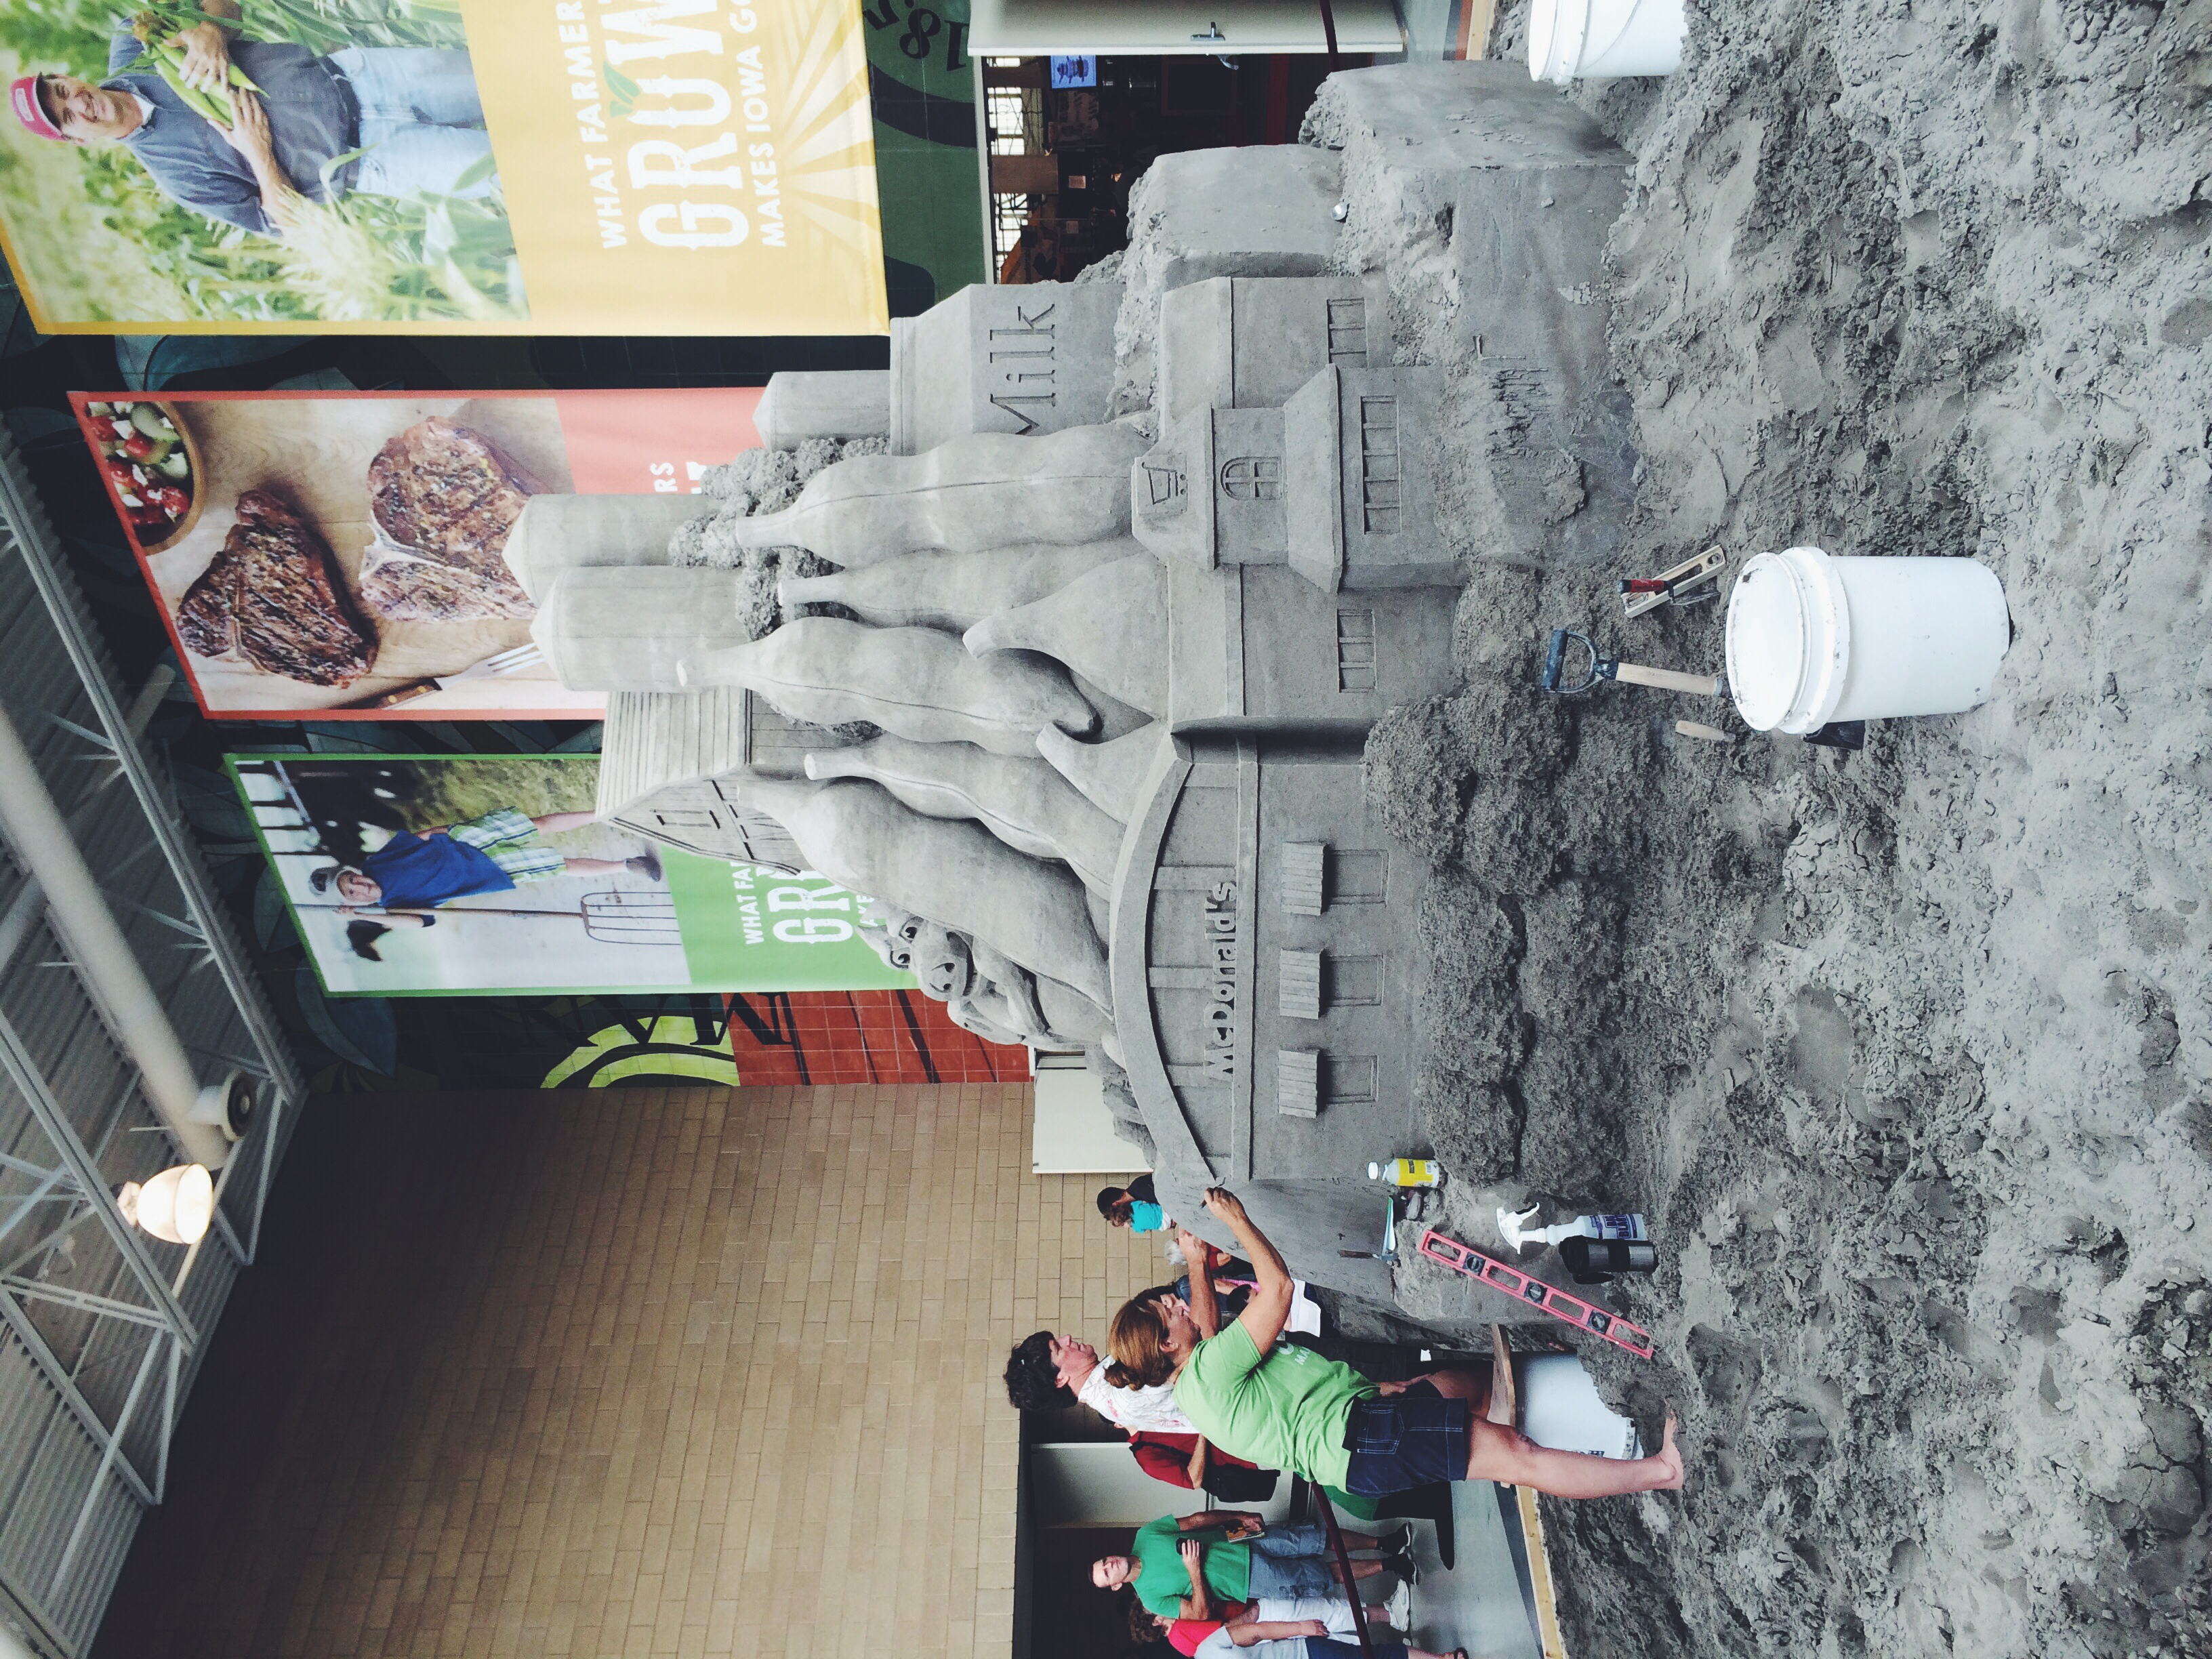 I thought this sand castle in the Varied Industries Building was quite impressive!